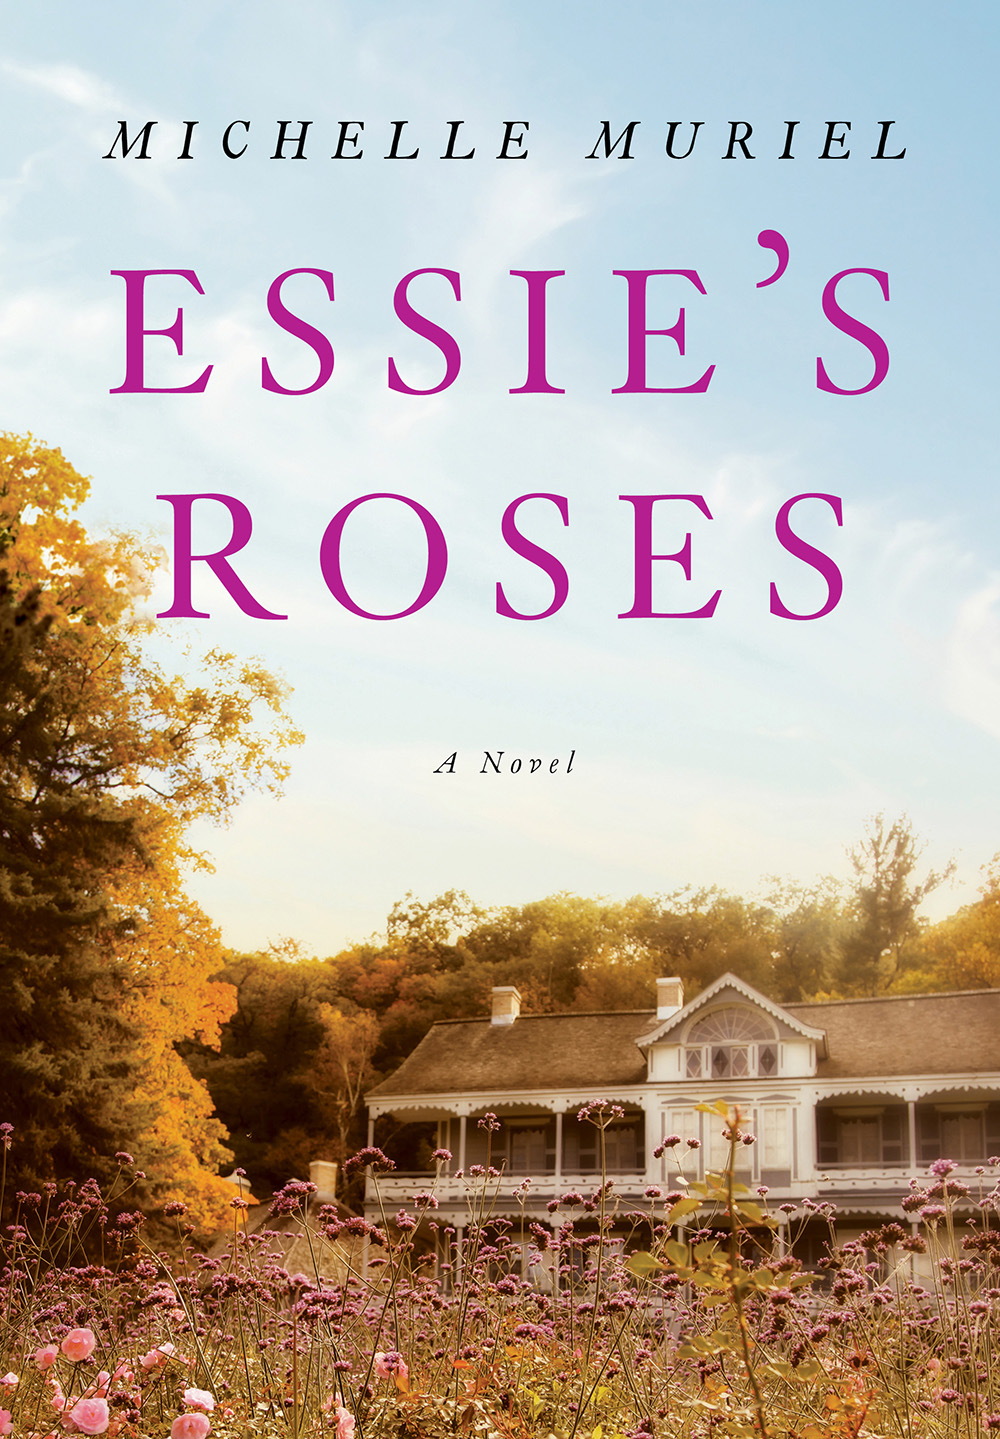 Essie's Roses by bestselling author Michelle Muriel is a heartwarming historical novel set before the Civil War about secrets, love, freedom and the power of a dream. Available now in print and eBook Amazon Barnes Noble, IndieBound www.MichelleMuriel.com